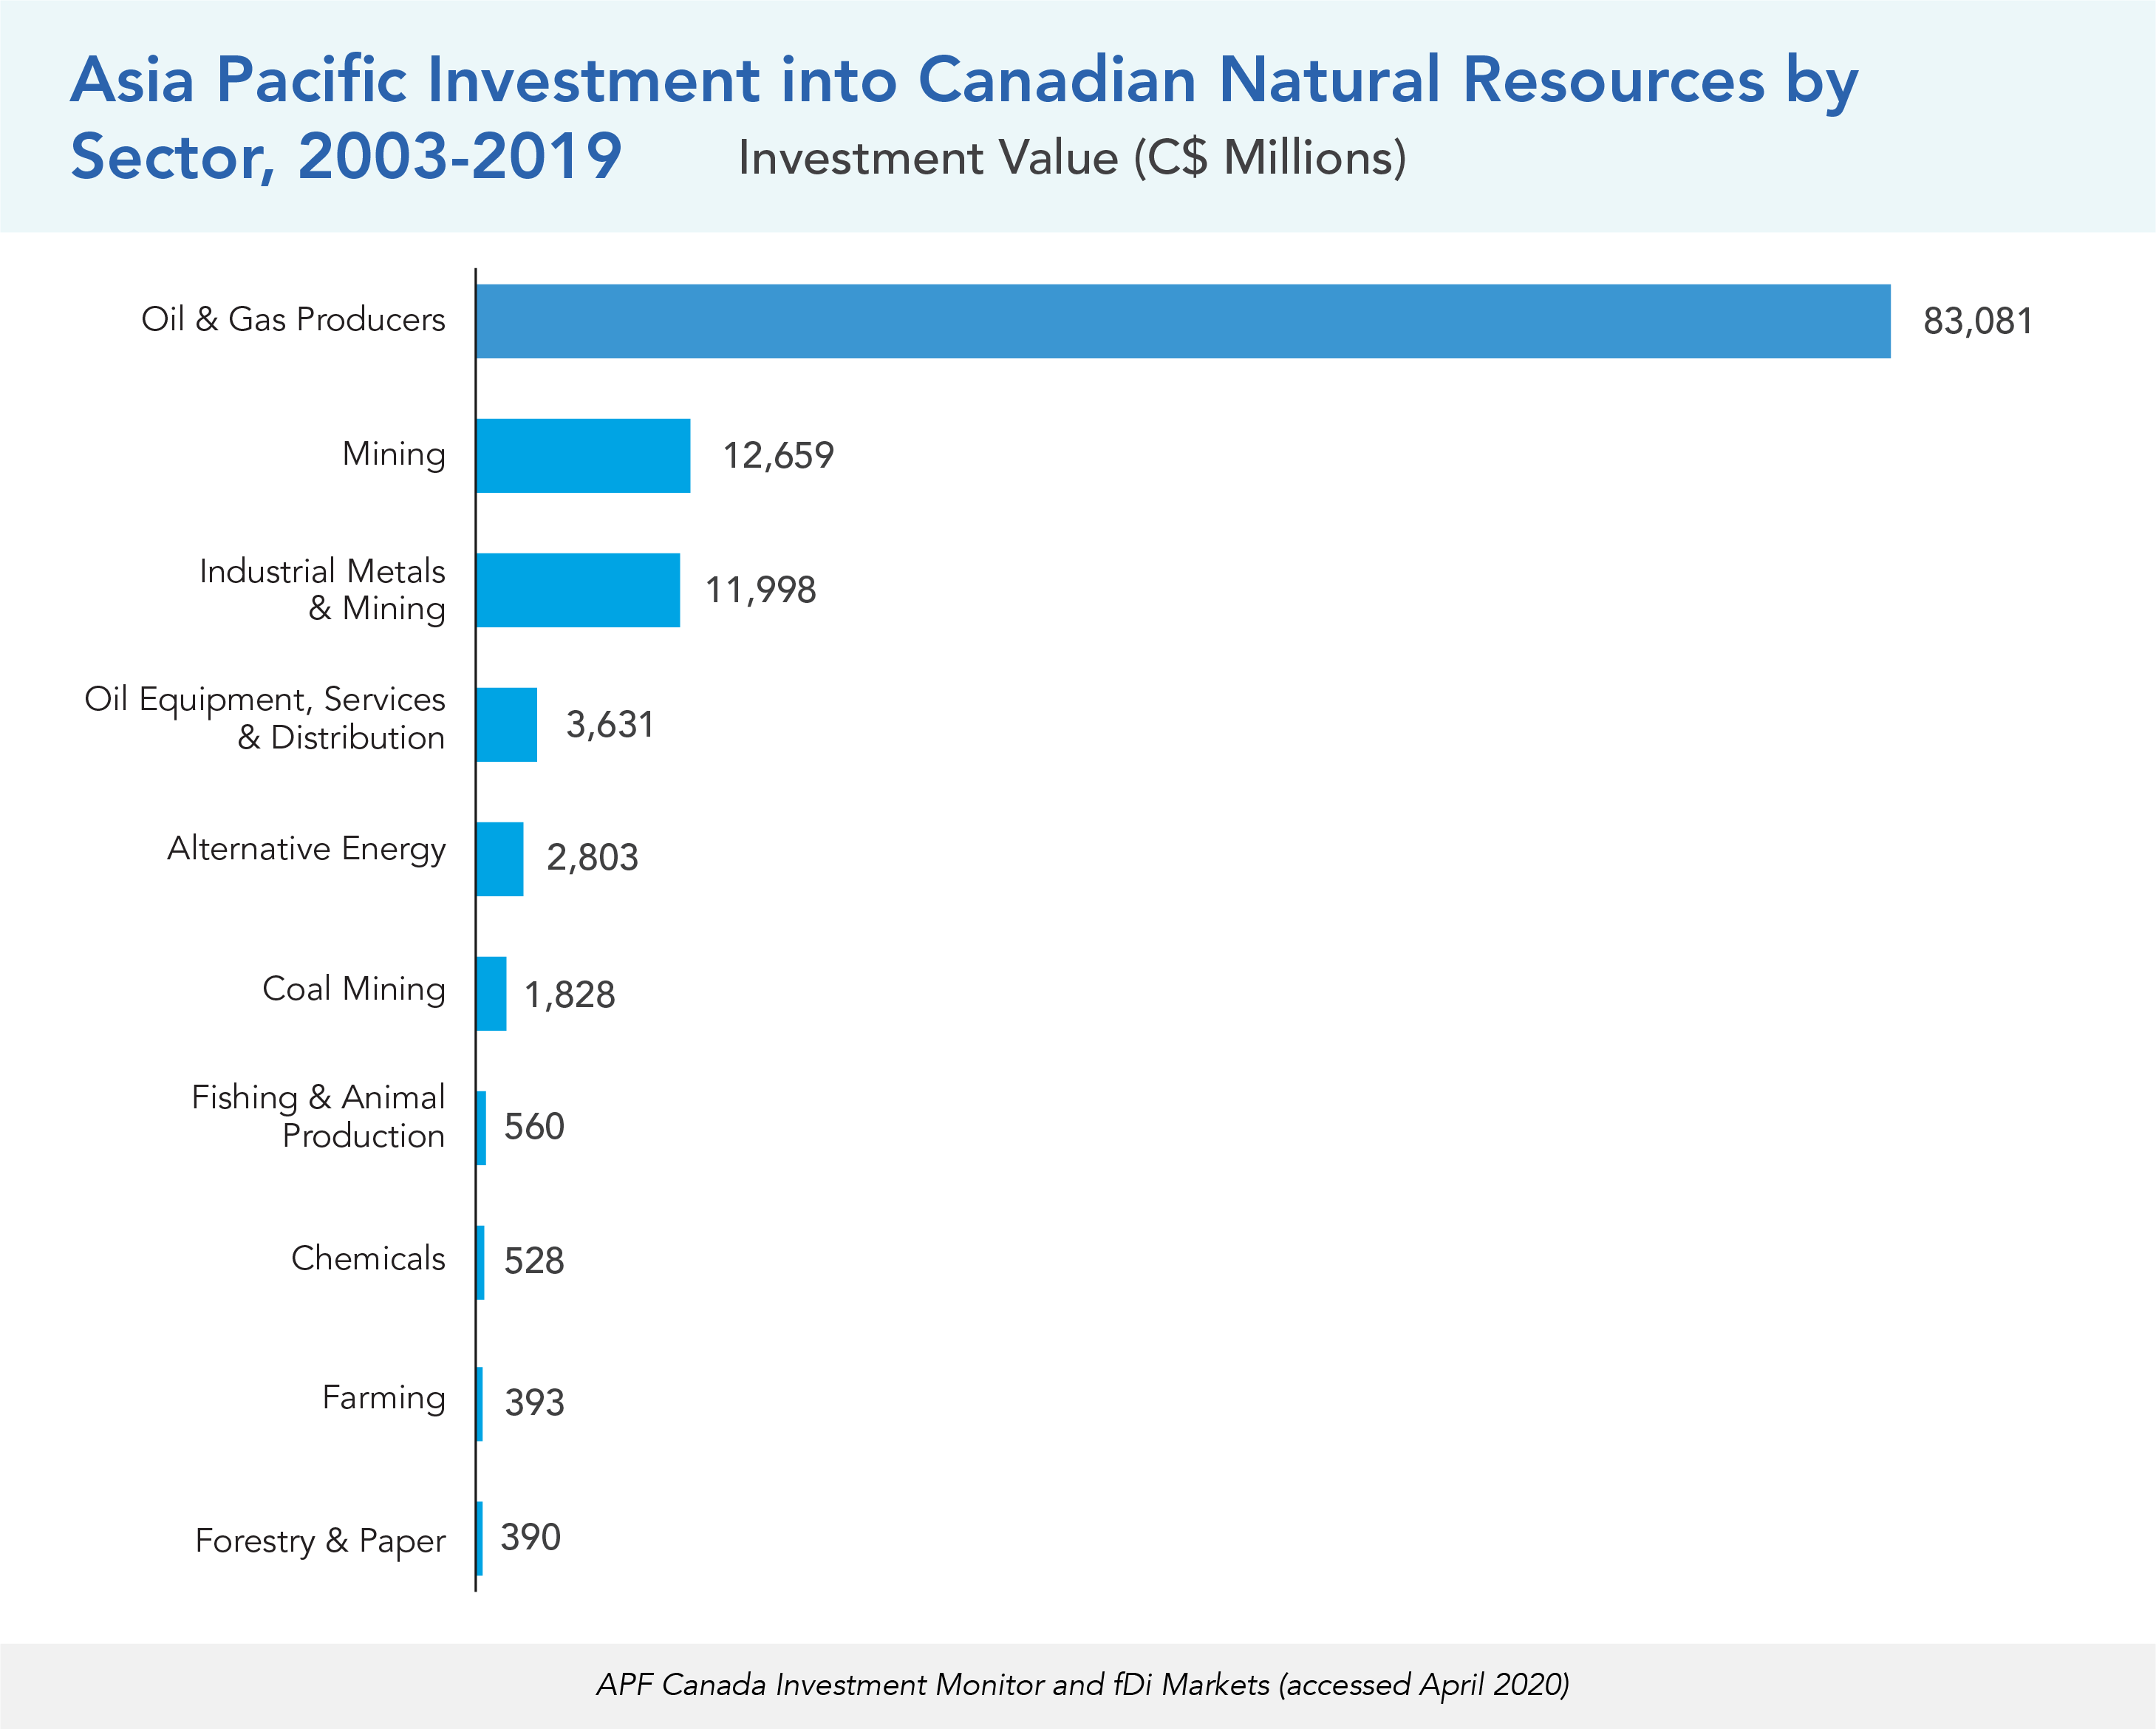 Asia Pacific Investment into Canadian Natural Resources by Sector, 2003-2019